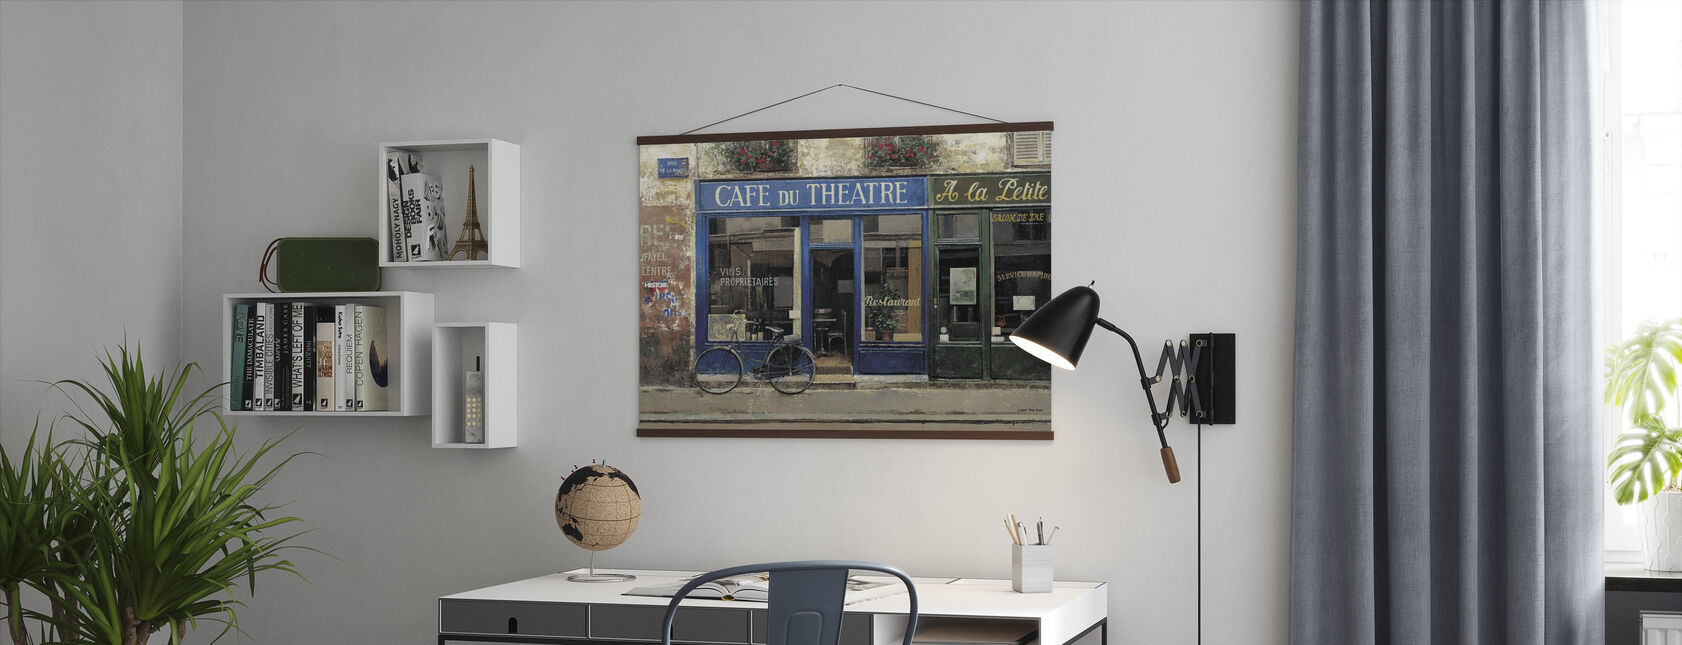 Cafe Du Theater - Poster - Office